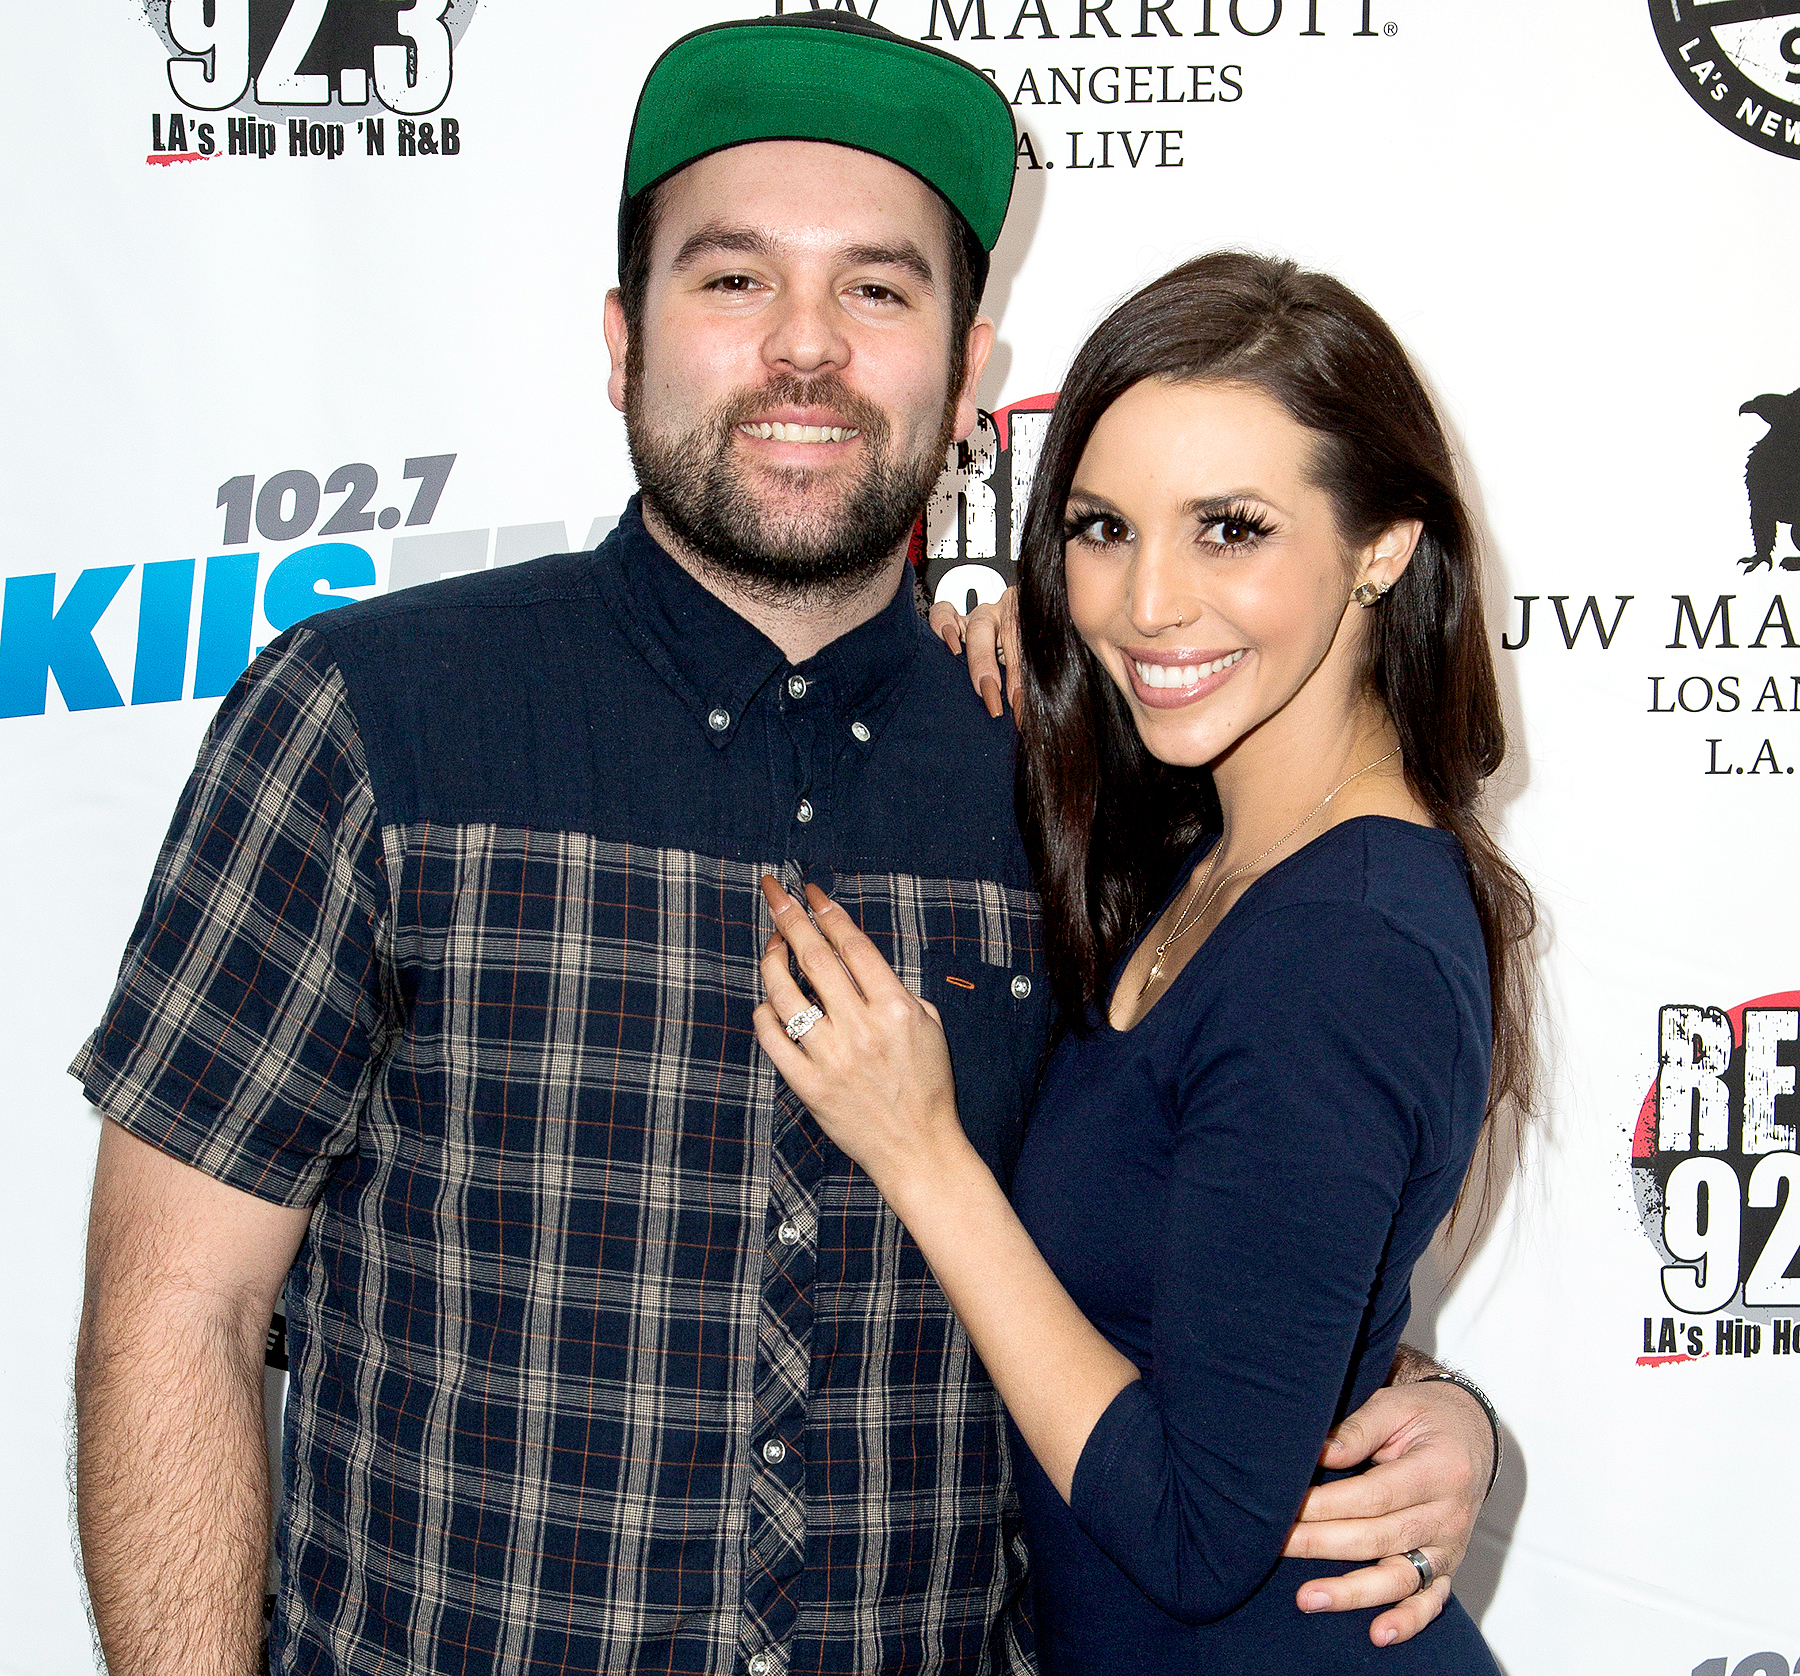 Michael Shay and Scheana Marie attend Alt 98.7, 102.7 KIIS FM and REAL 92.3 Celebrate The 2016 GRAMMY Awards at The Mixing Room at the JW Marriot Los Angeles on February 12, 2016 in Los Angeles, California.